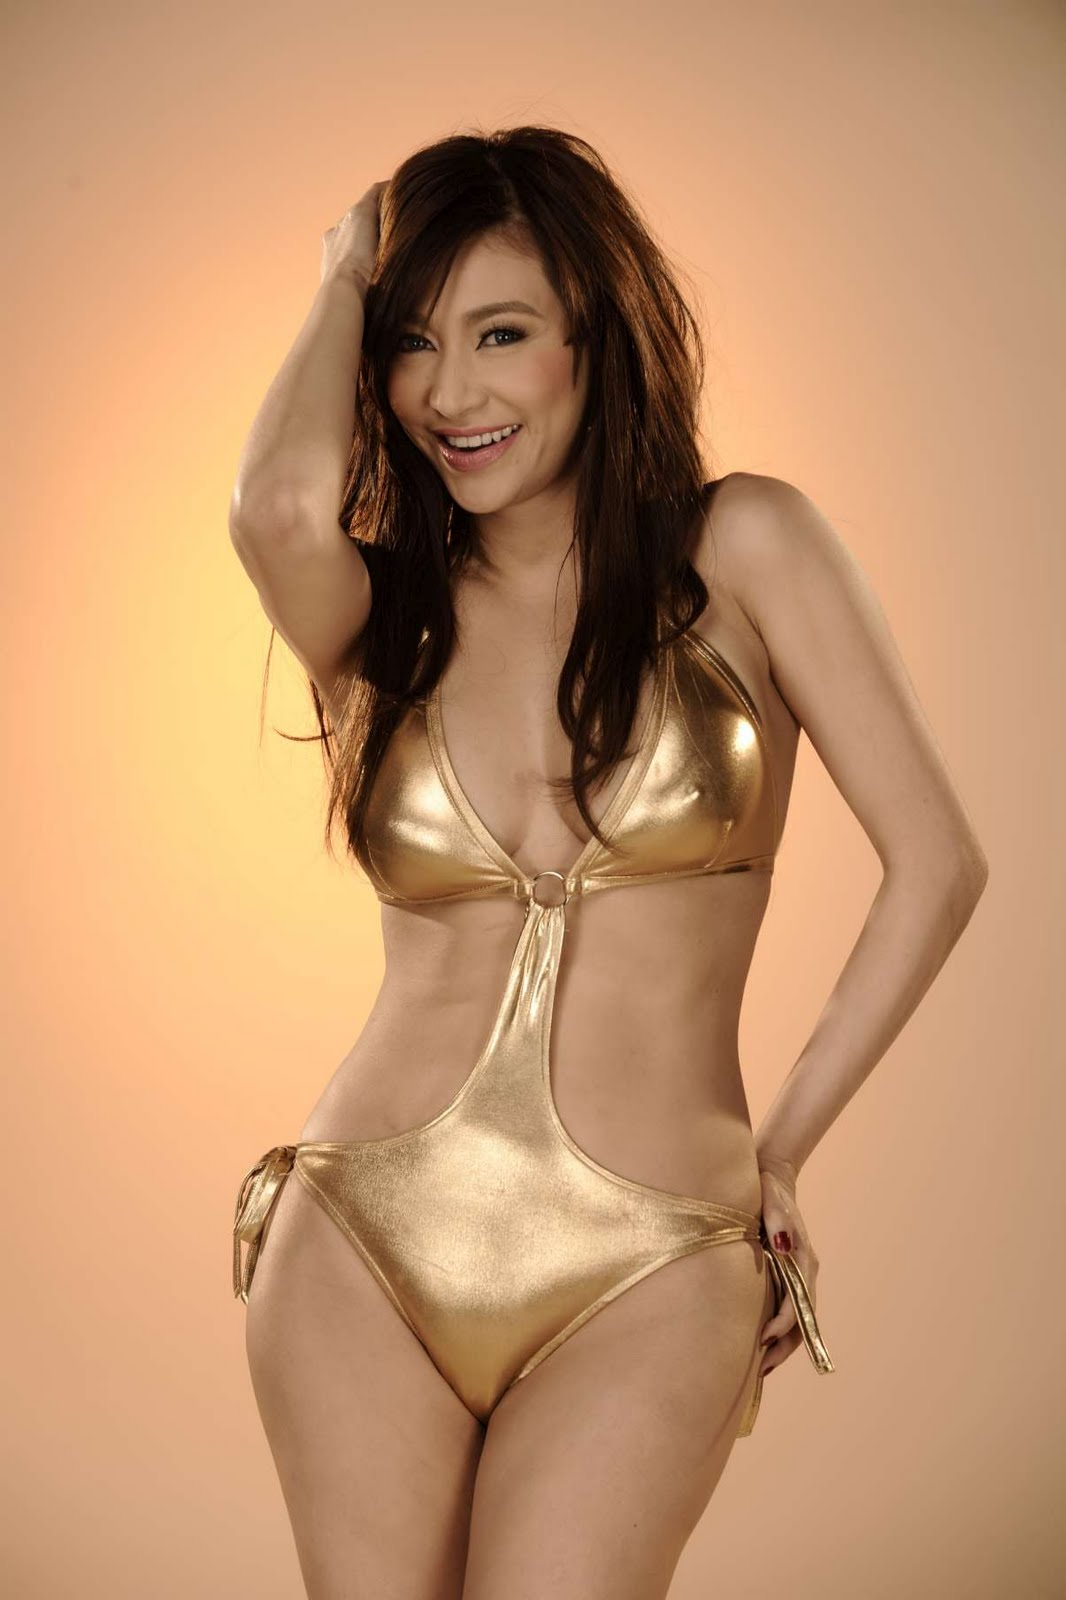 rufa mae quinto fake pinay nude photo